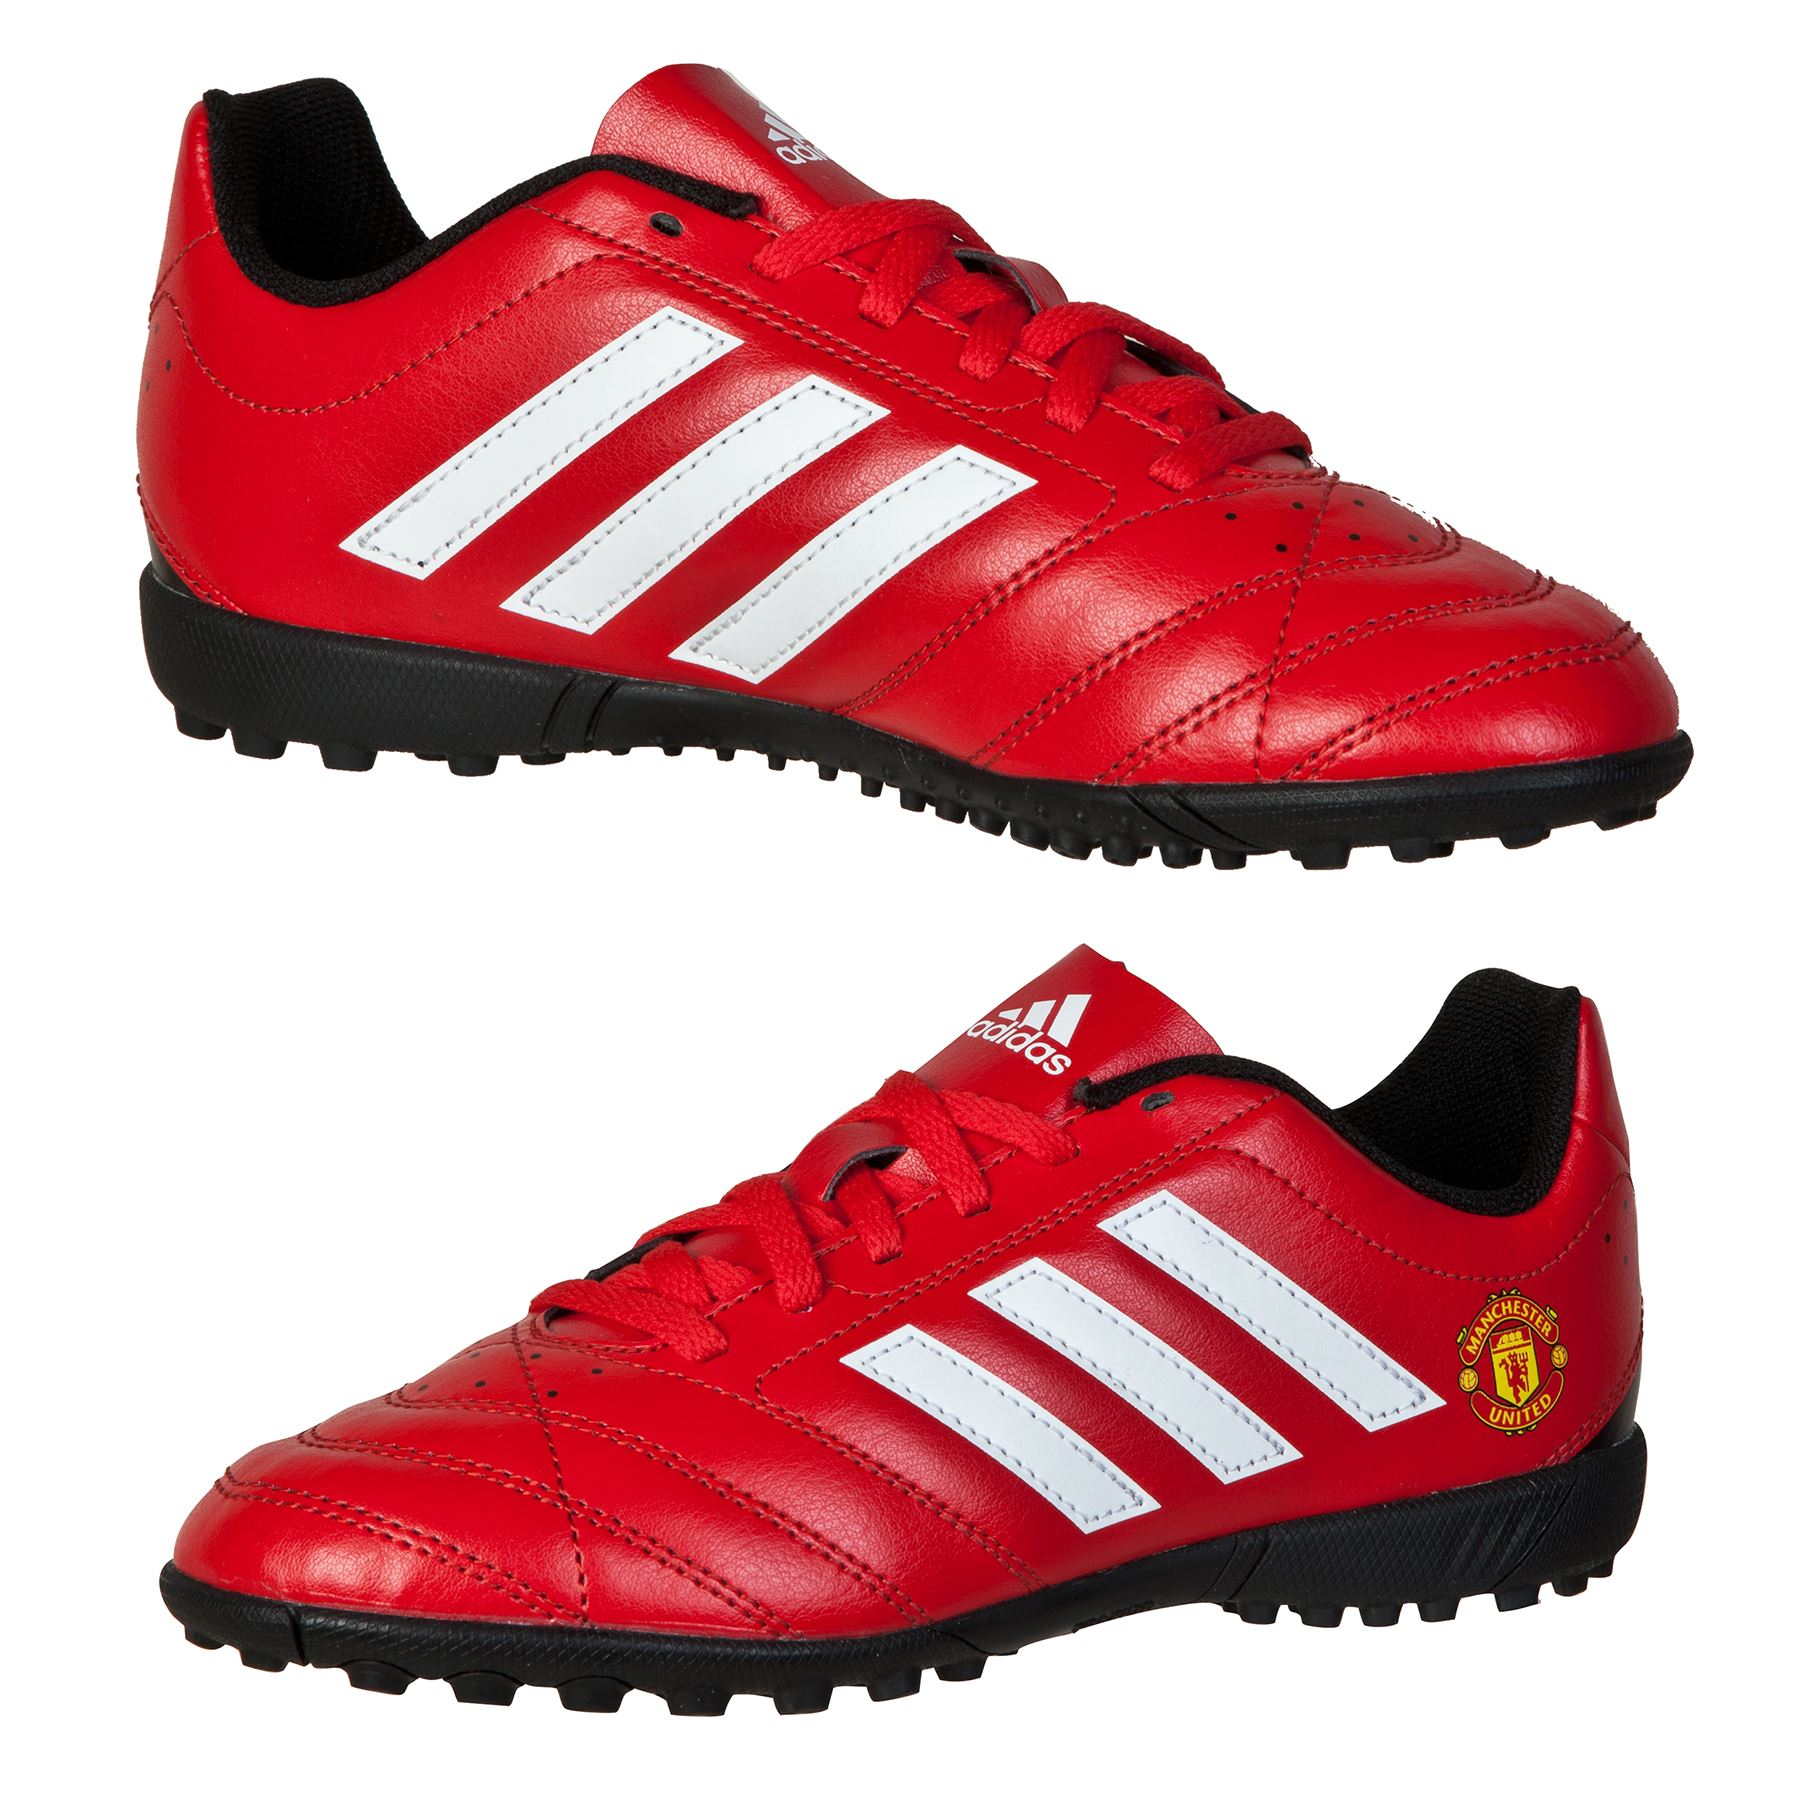 Manchester United Shoes Adidas Uk